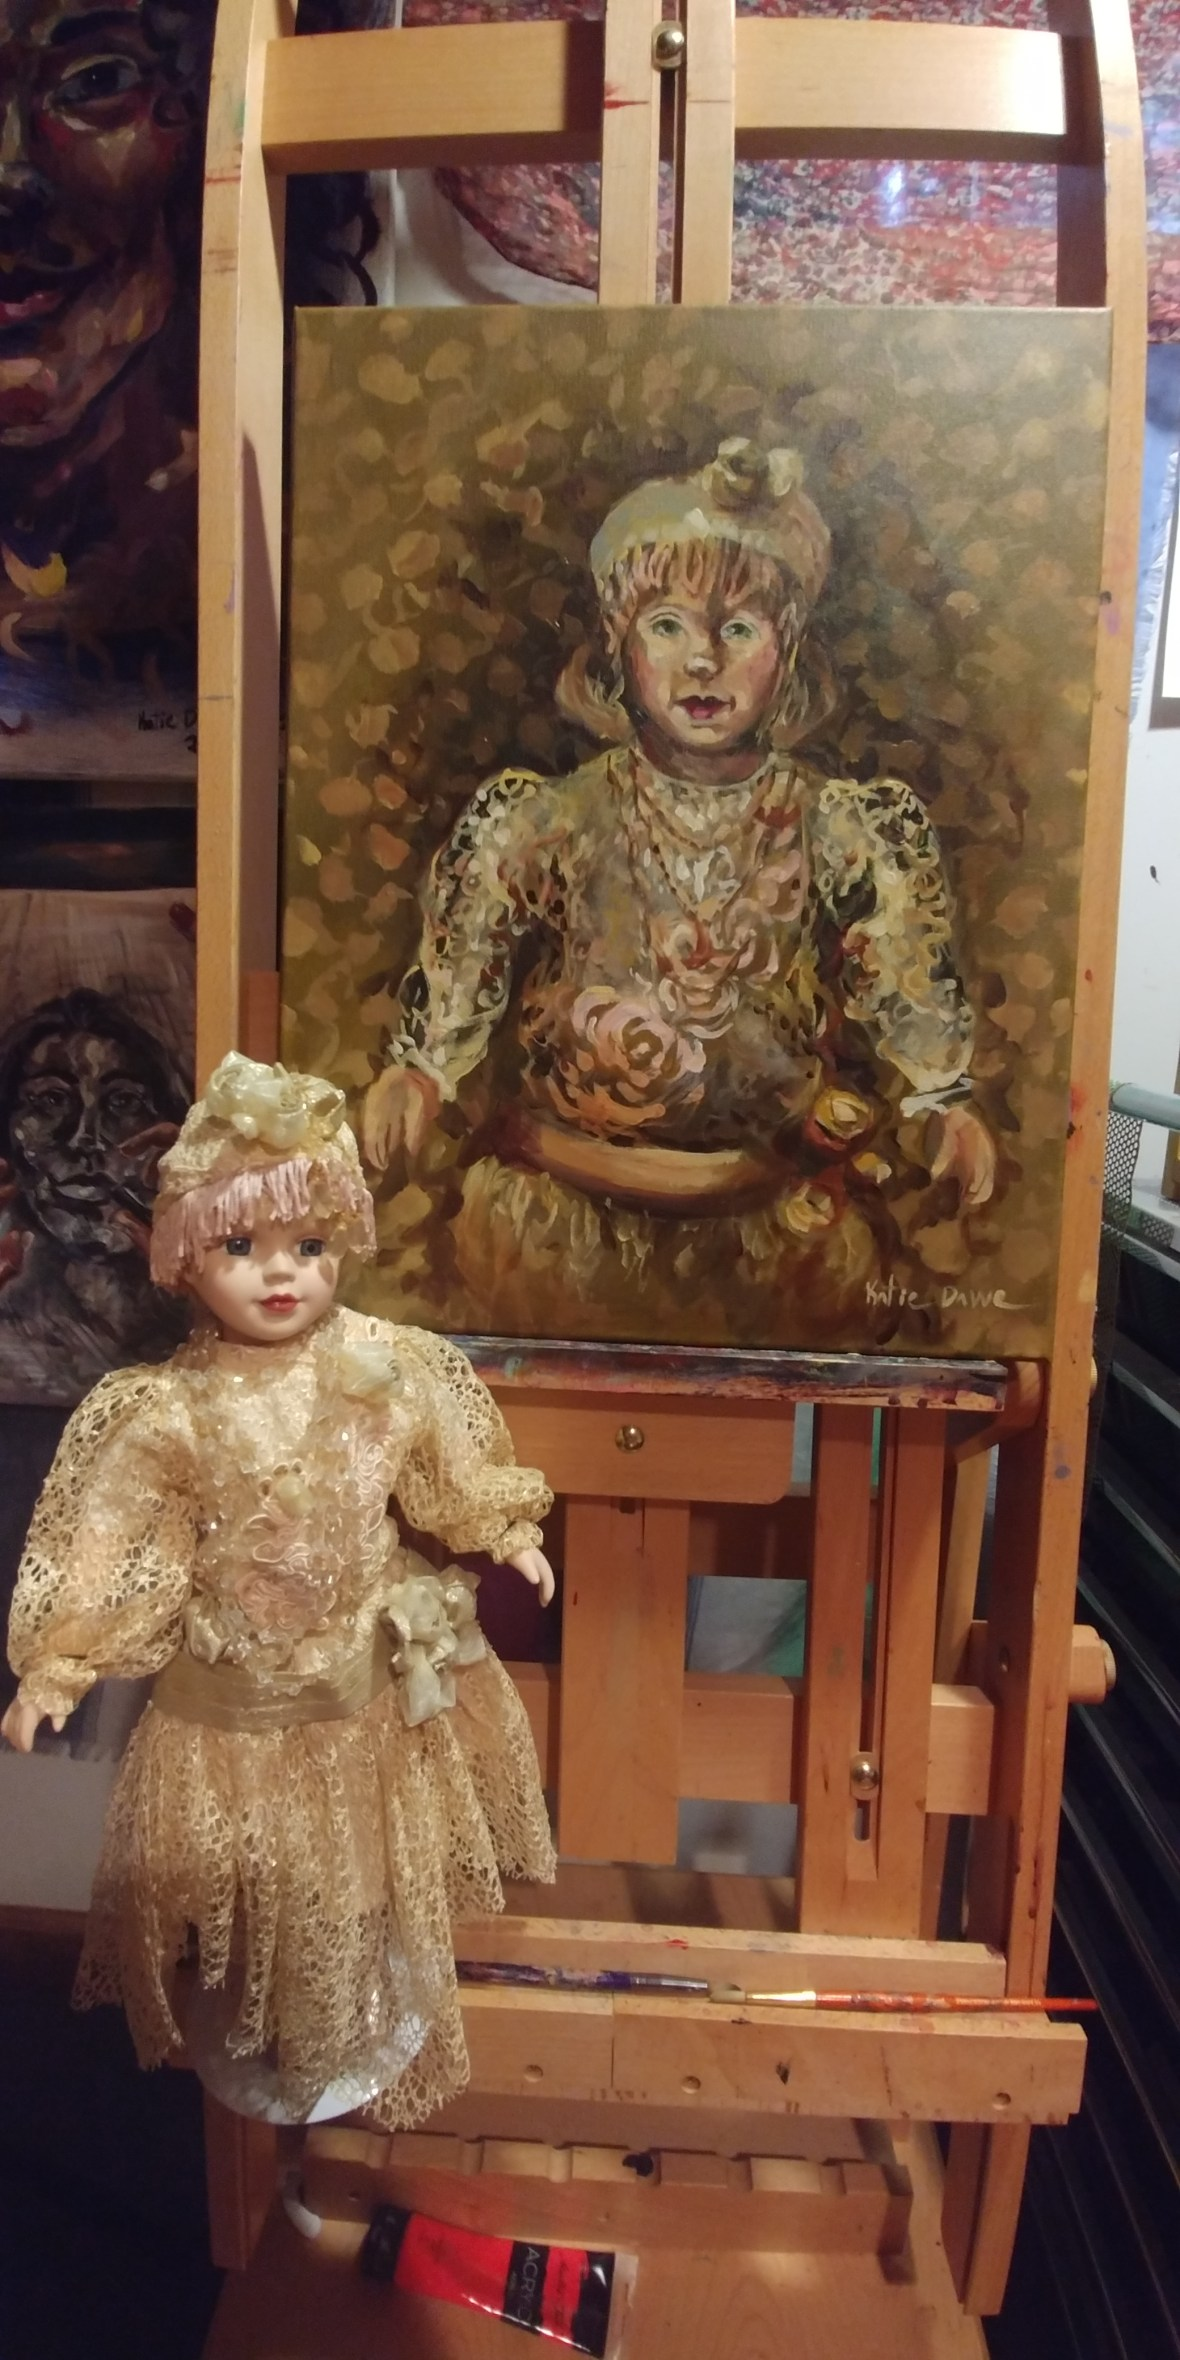 Golden Doll with reference